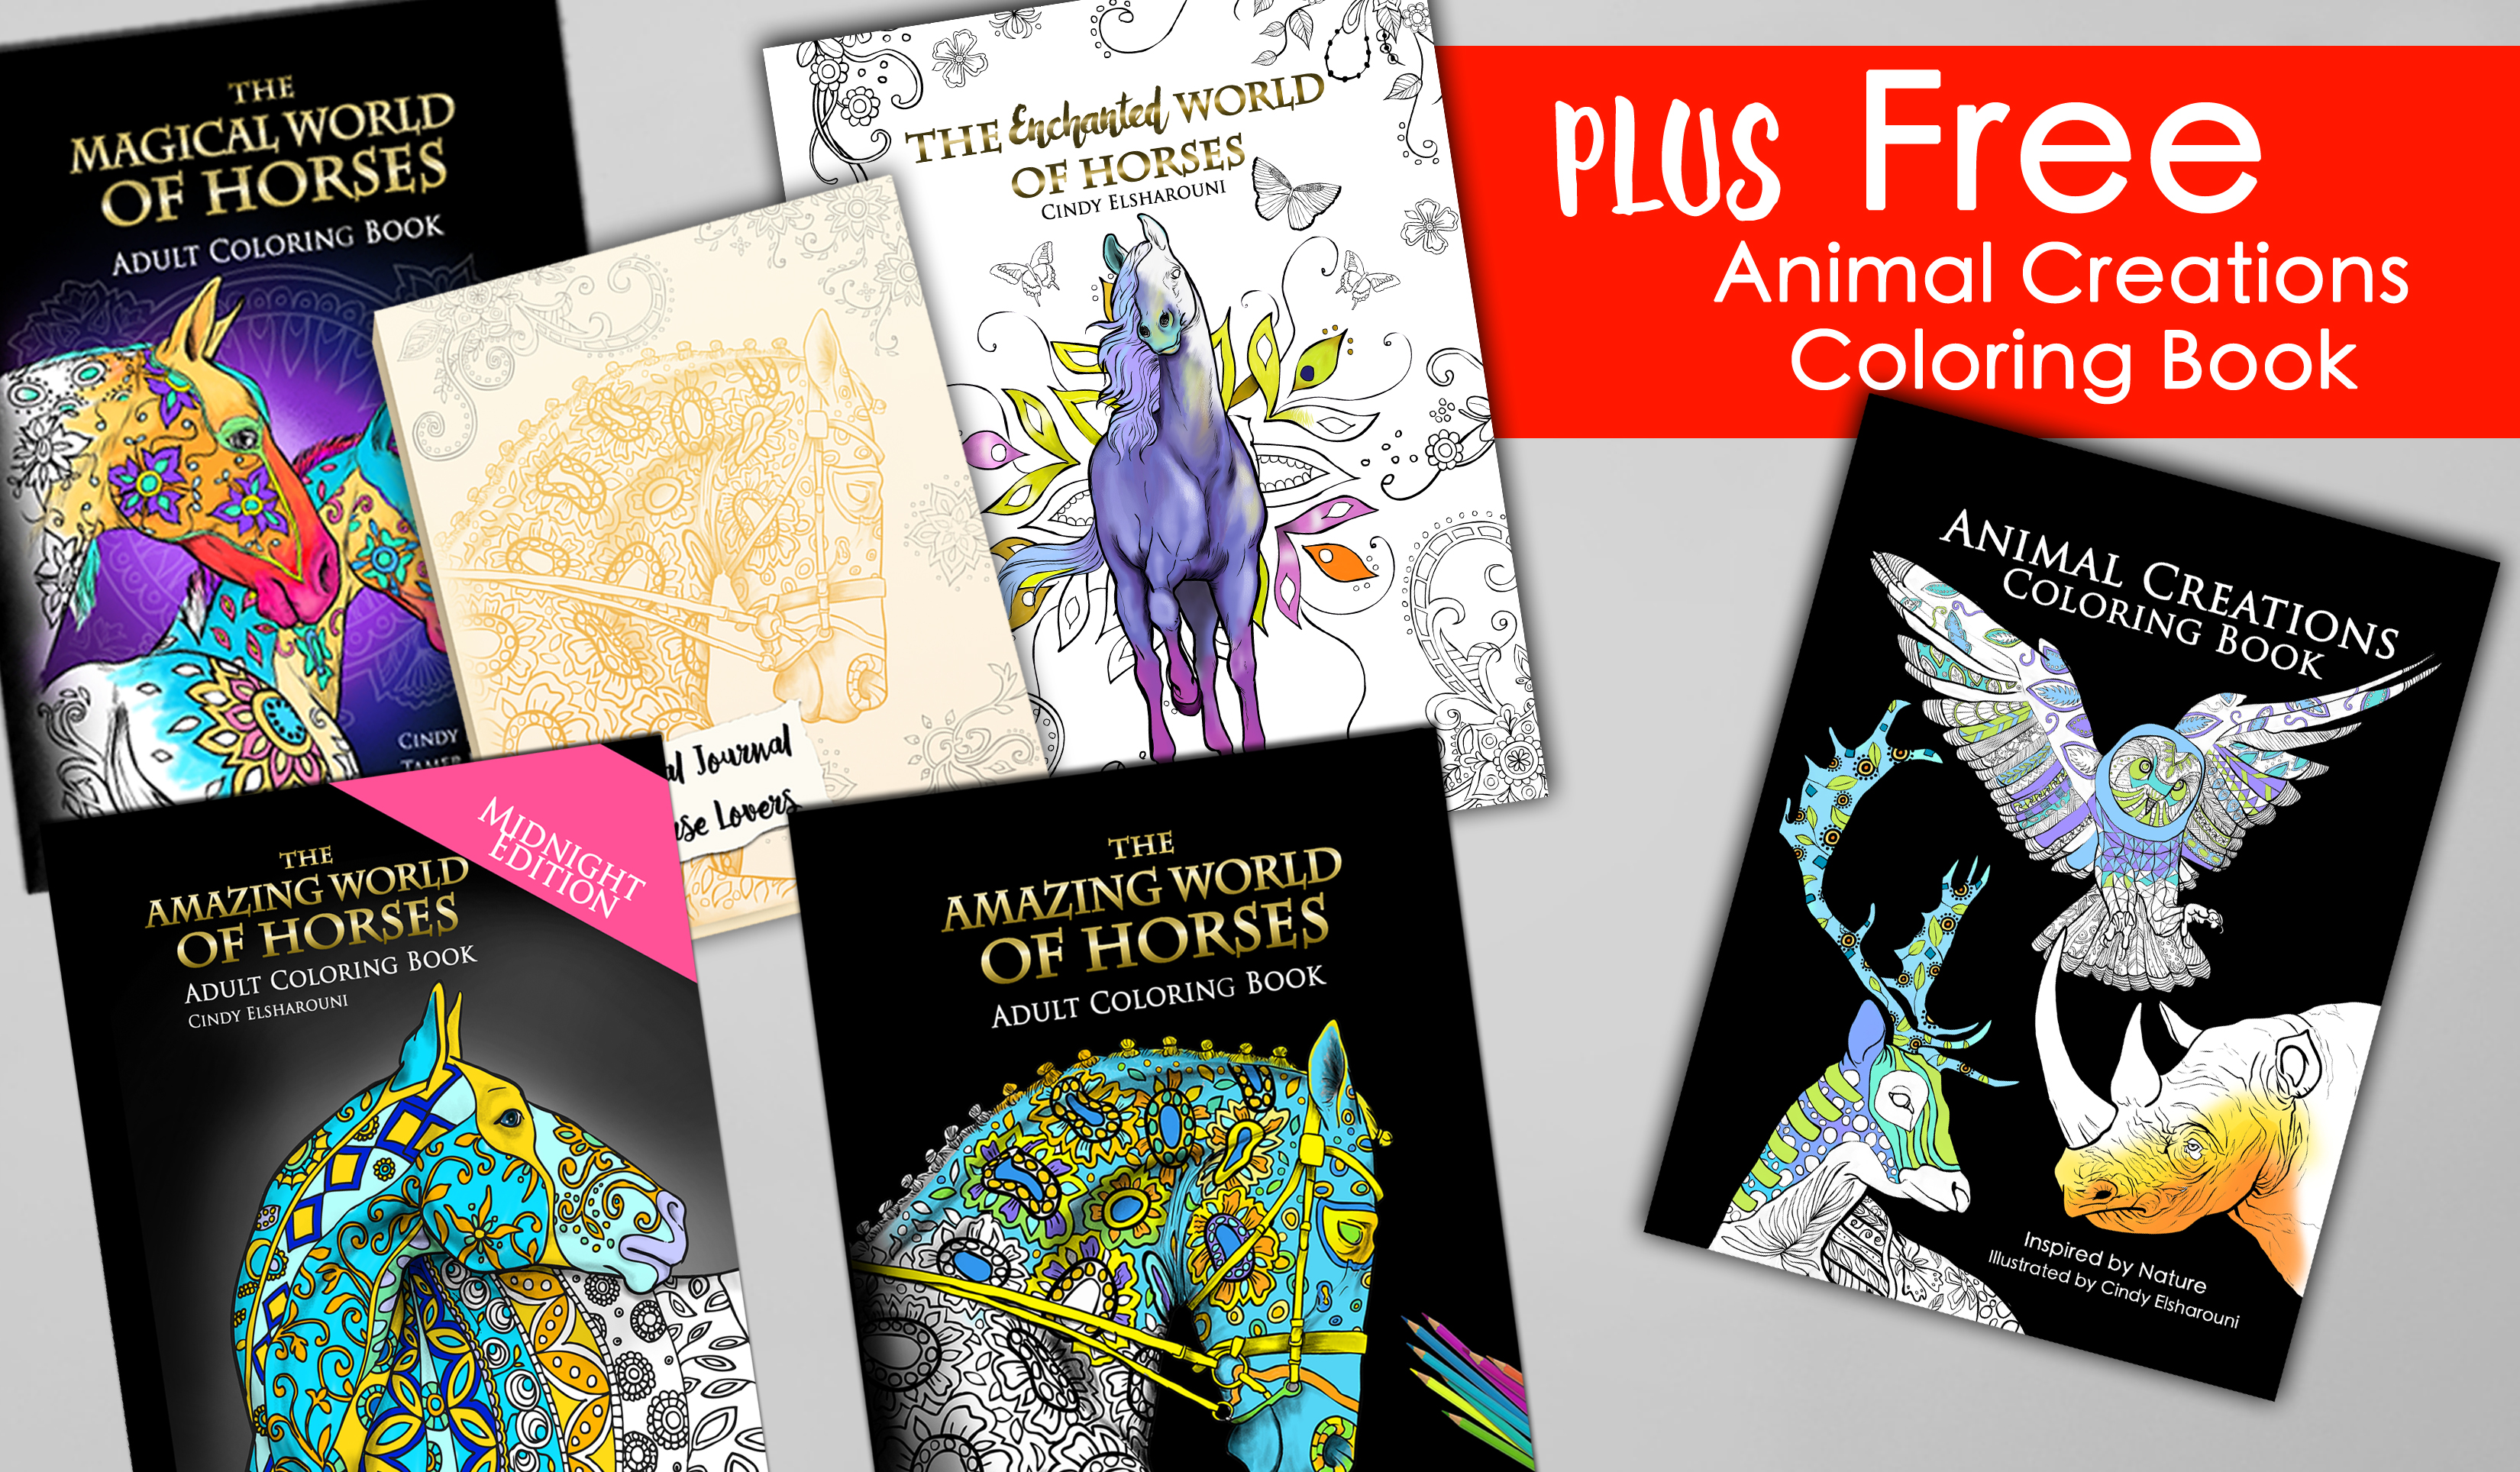 5 Horse Coloring Books Plus Free Animal Creations The Amazing World Of Horses Magical Enchanted